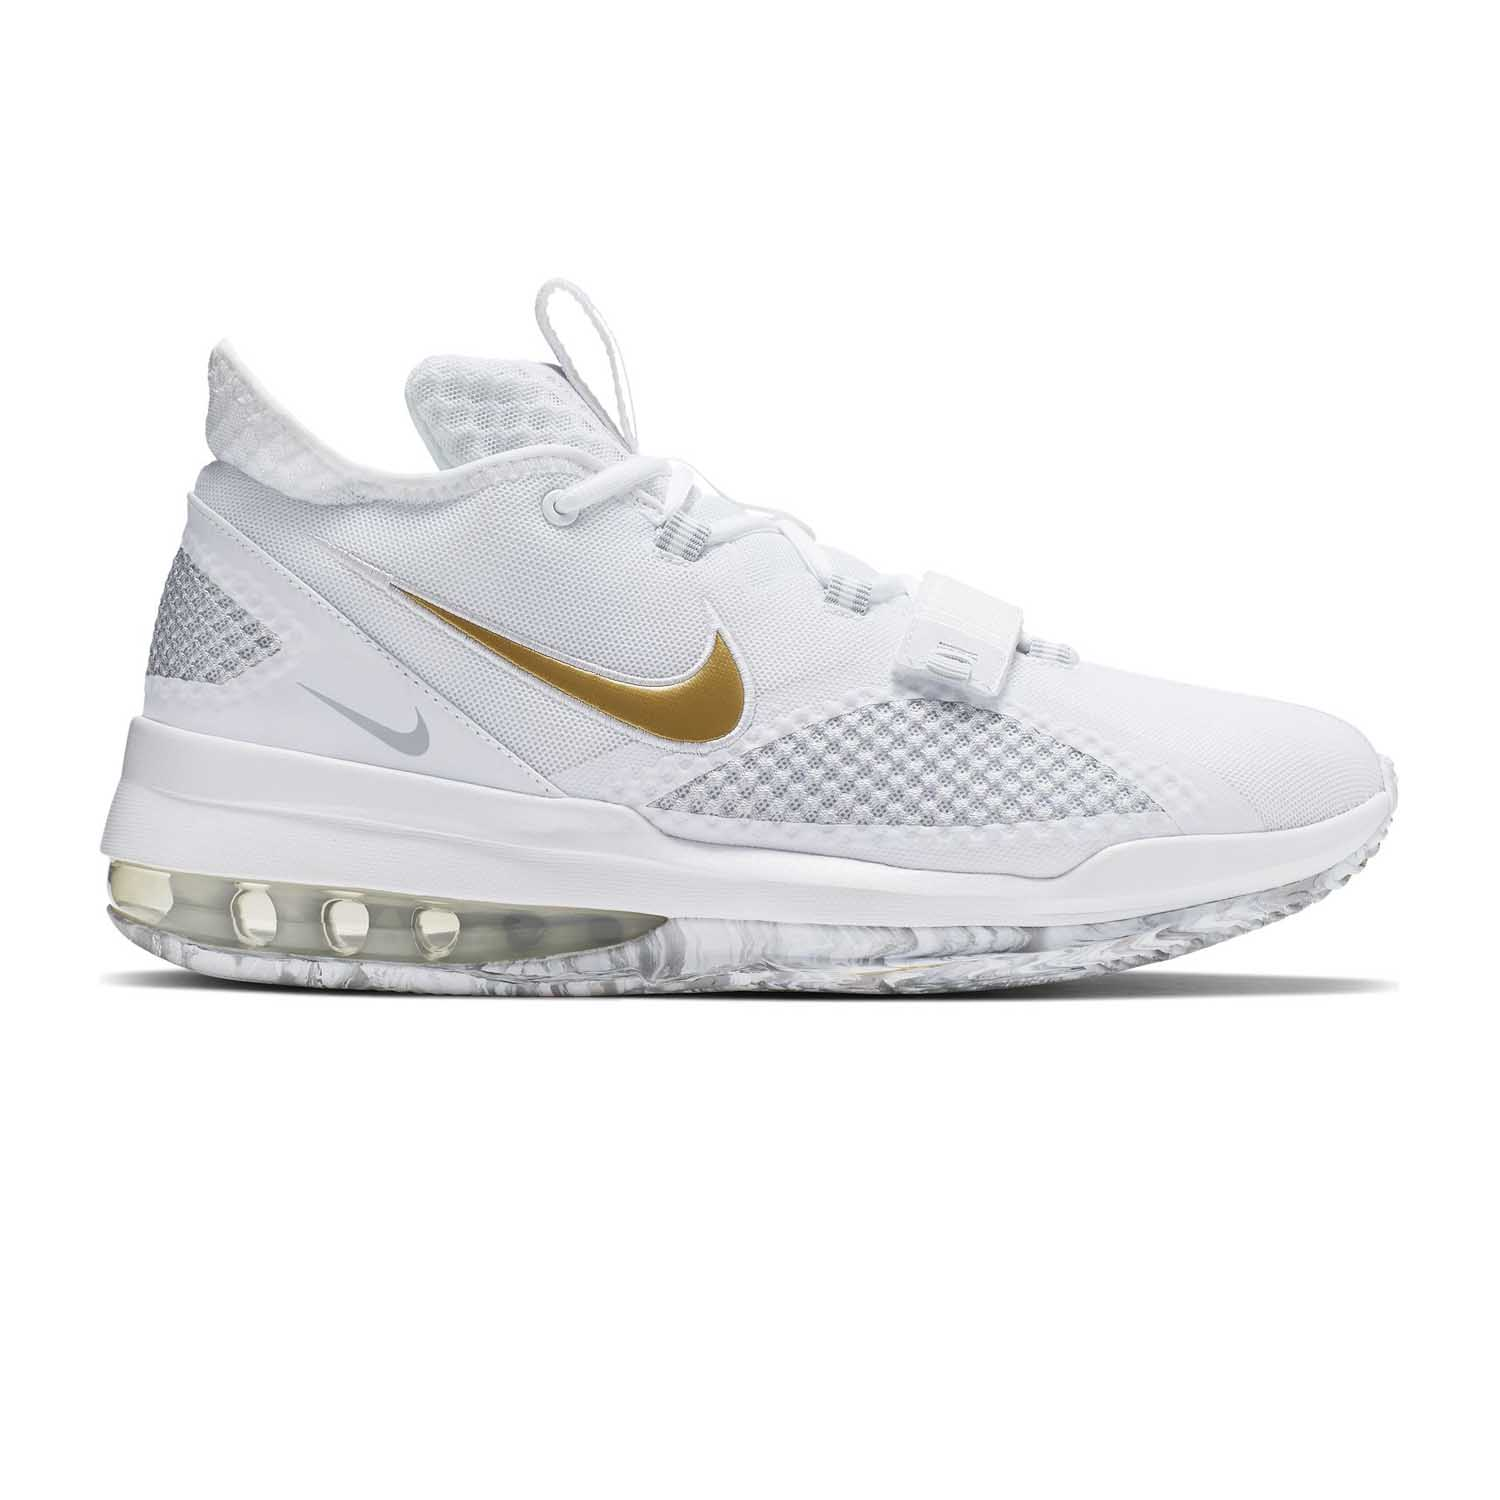 sports shoes ad6b3 ee8f2 All About Sneakers Nike Air Force Max Low M ( BV0651-100 )